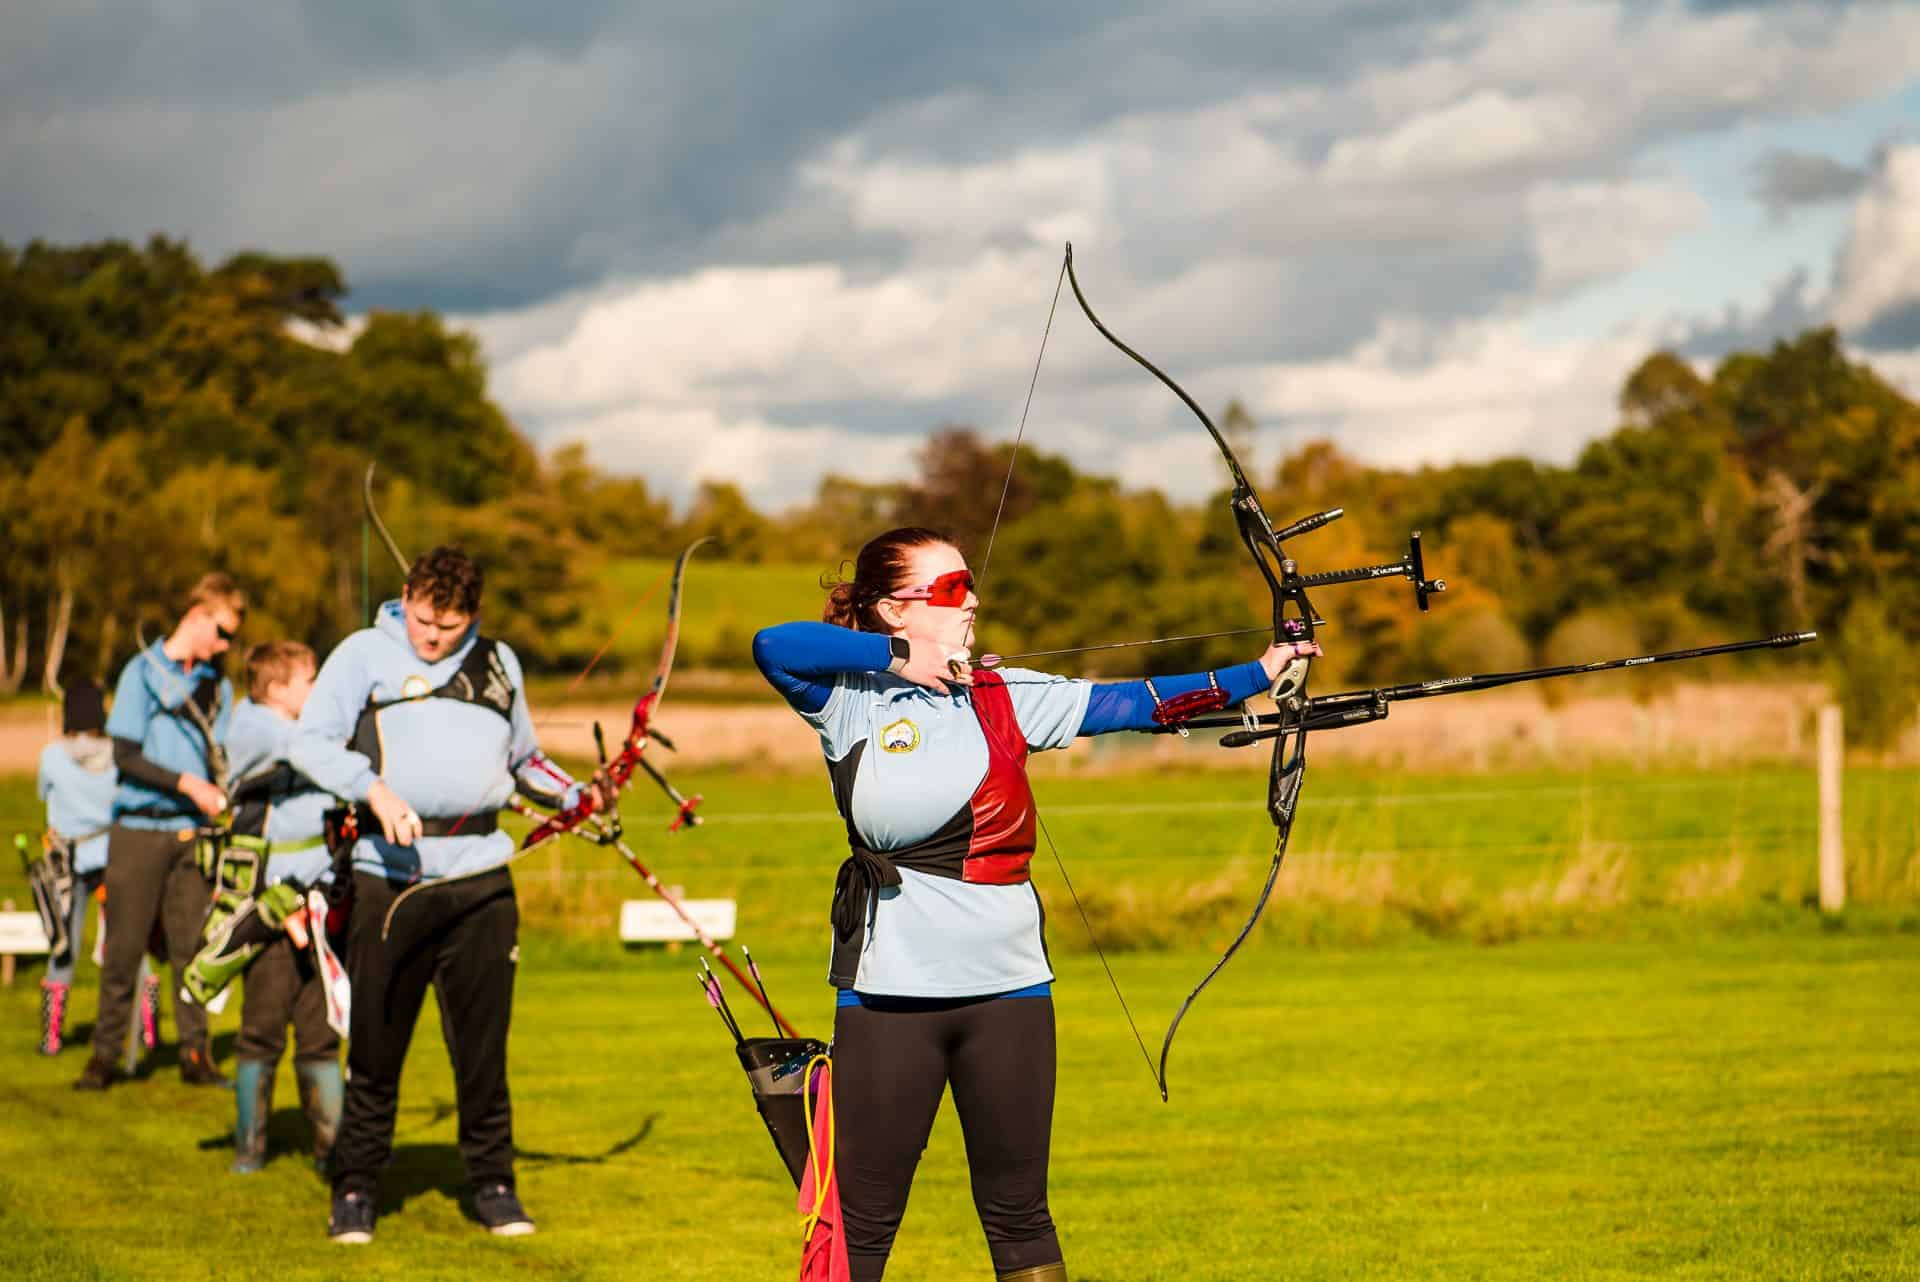 Archers at the outdoor range